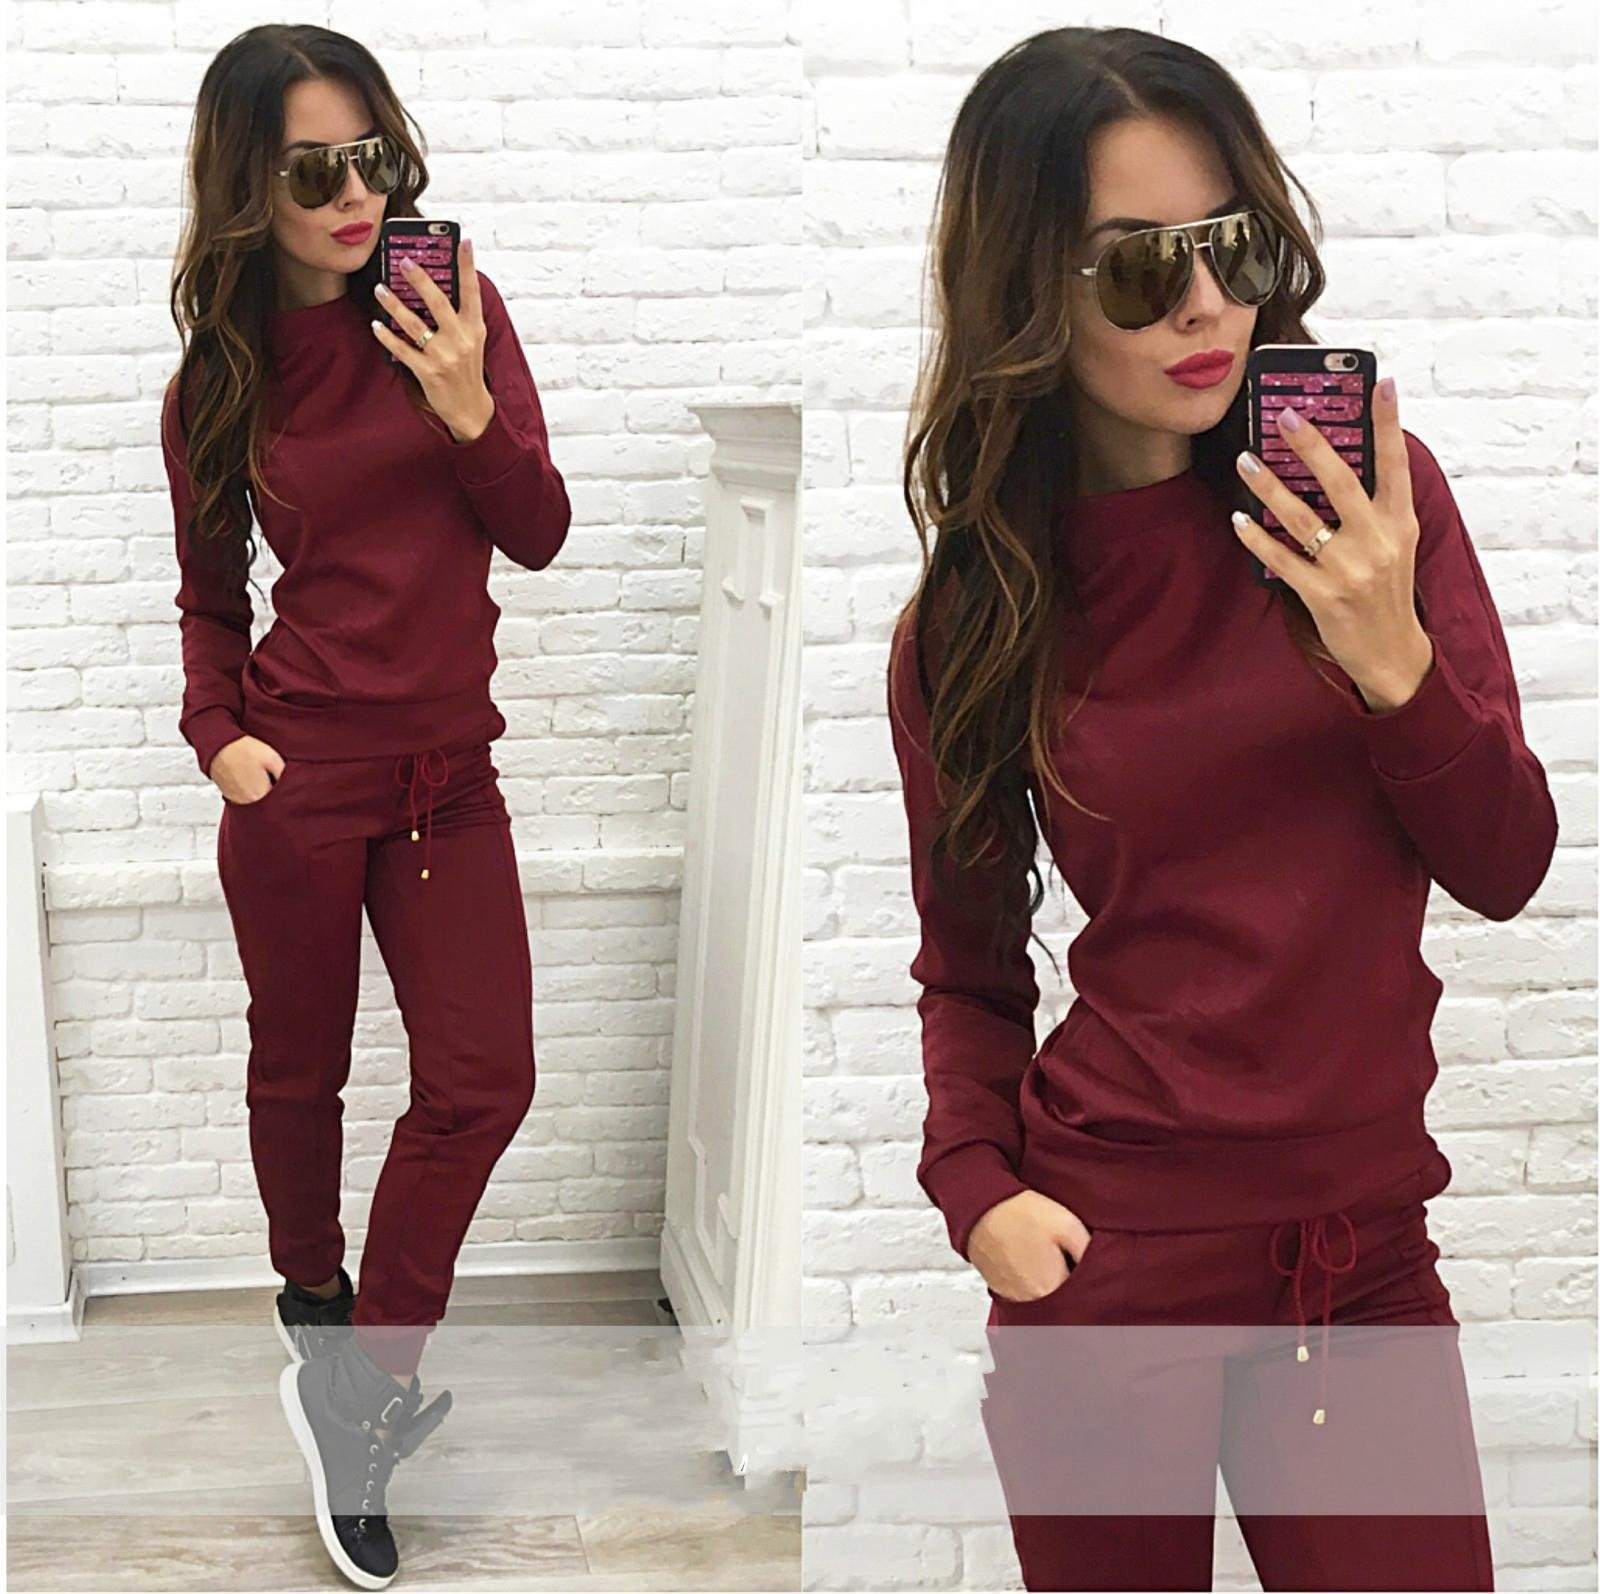 cb4c6f0bcbaf3 2019 2018 Brand New Women S Sportswear Tracksuits Hoodies Sweatshirt +Pant  Running Sport Track Suits Jogging Sets Female Clothes From Luoyishenlan